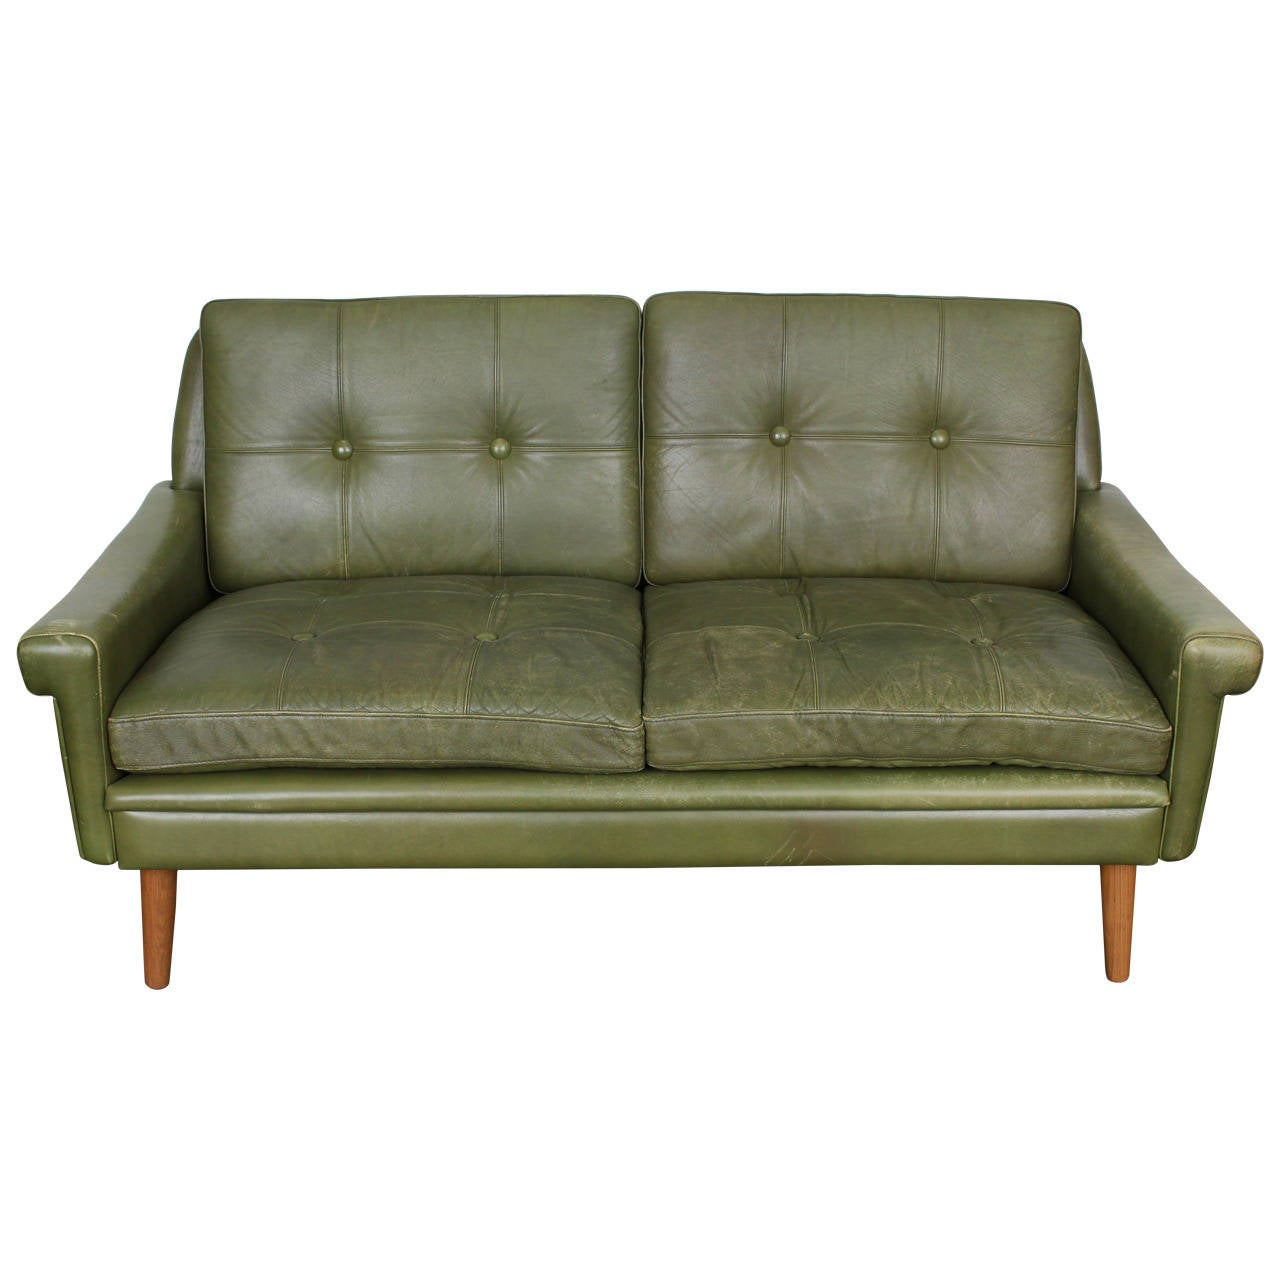 Mid century modern green leather loveseat by skippers for Modern love seats